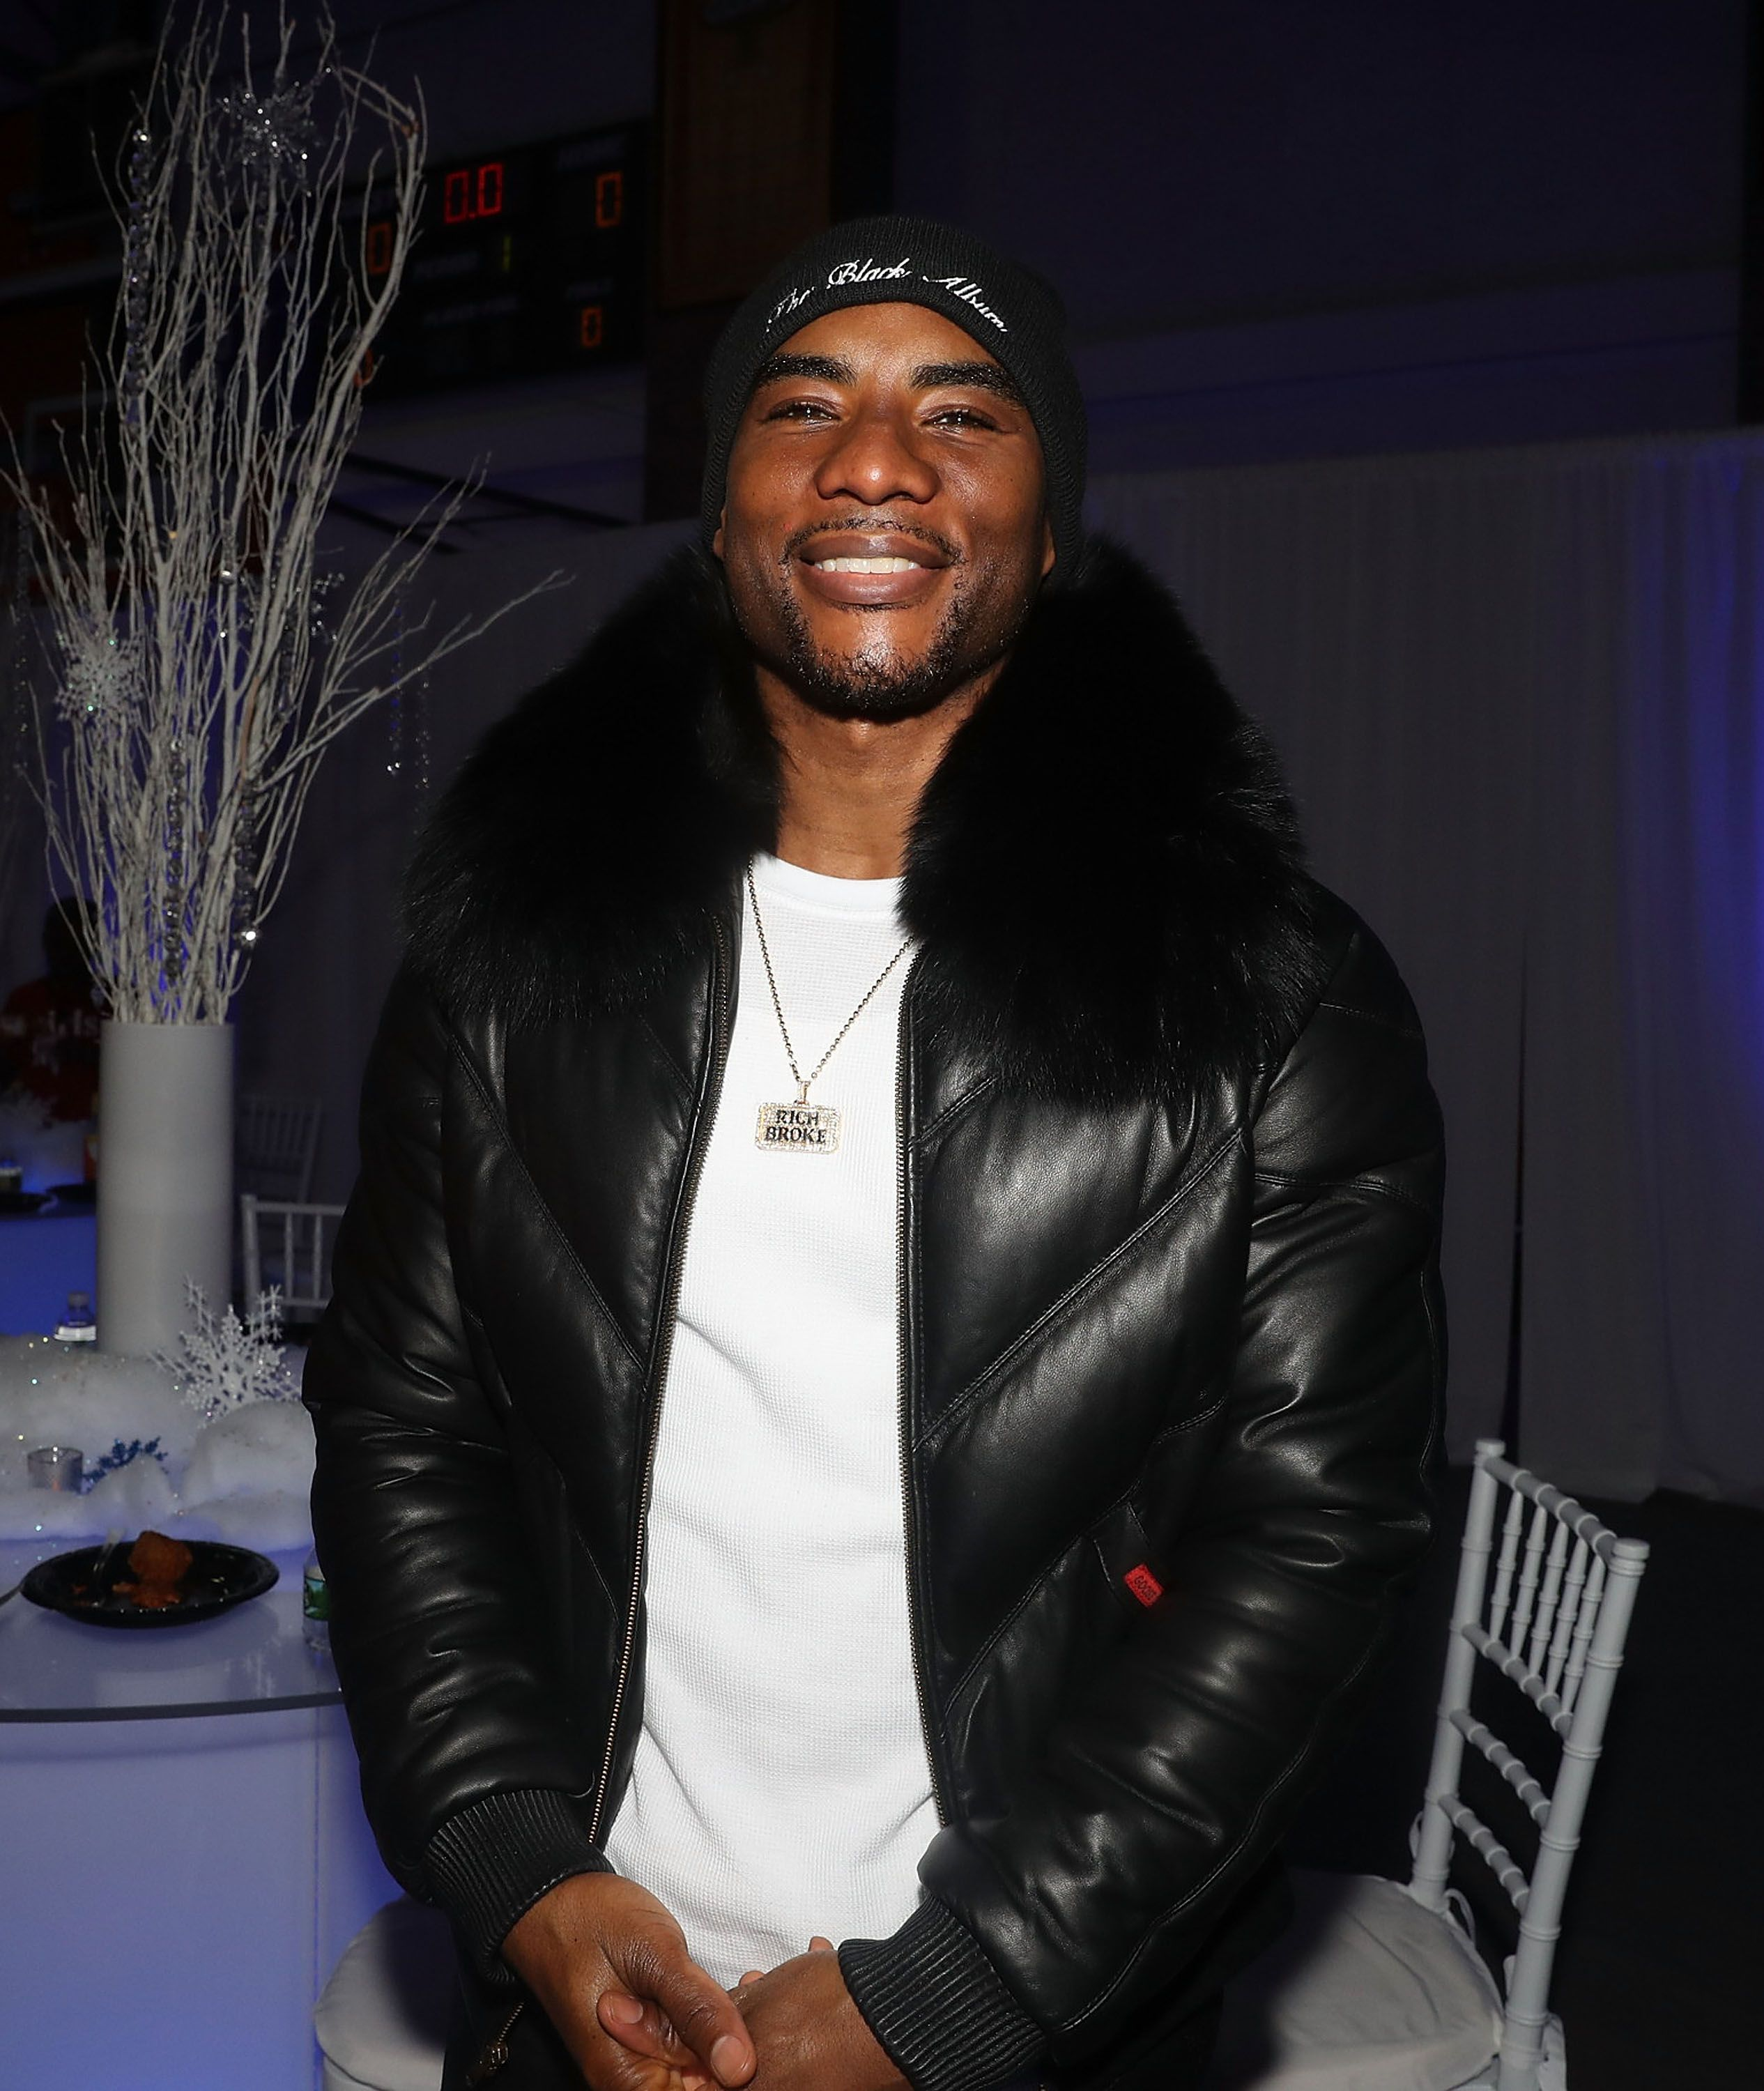 Charlamagne tha God at the 3rd Annual Winter Wonderland Holiday Charity Event hosted by La La Anthony in 2018 in New York City   Source: Getty Images